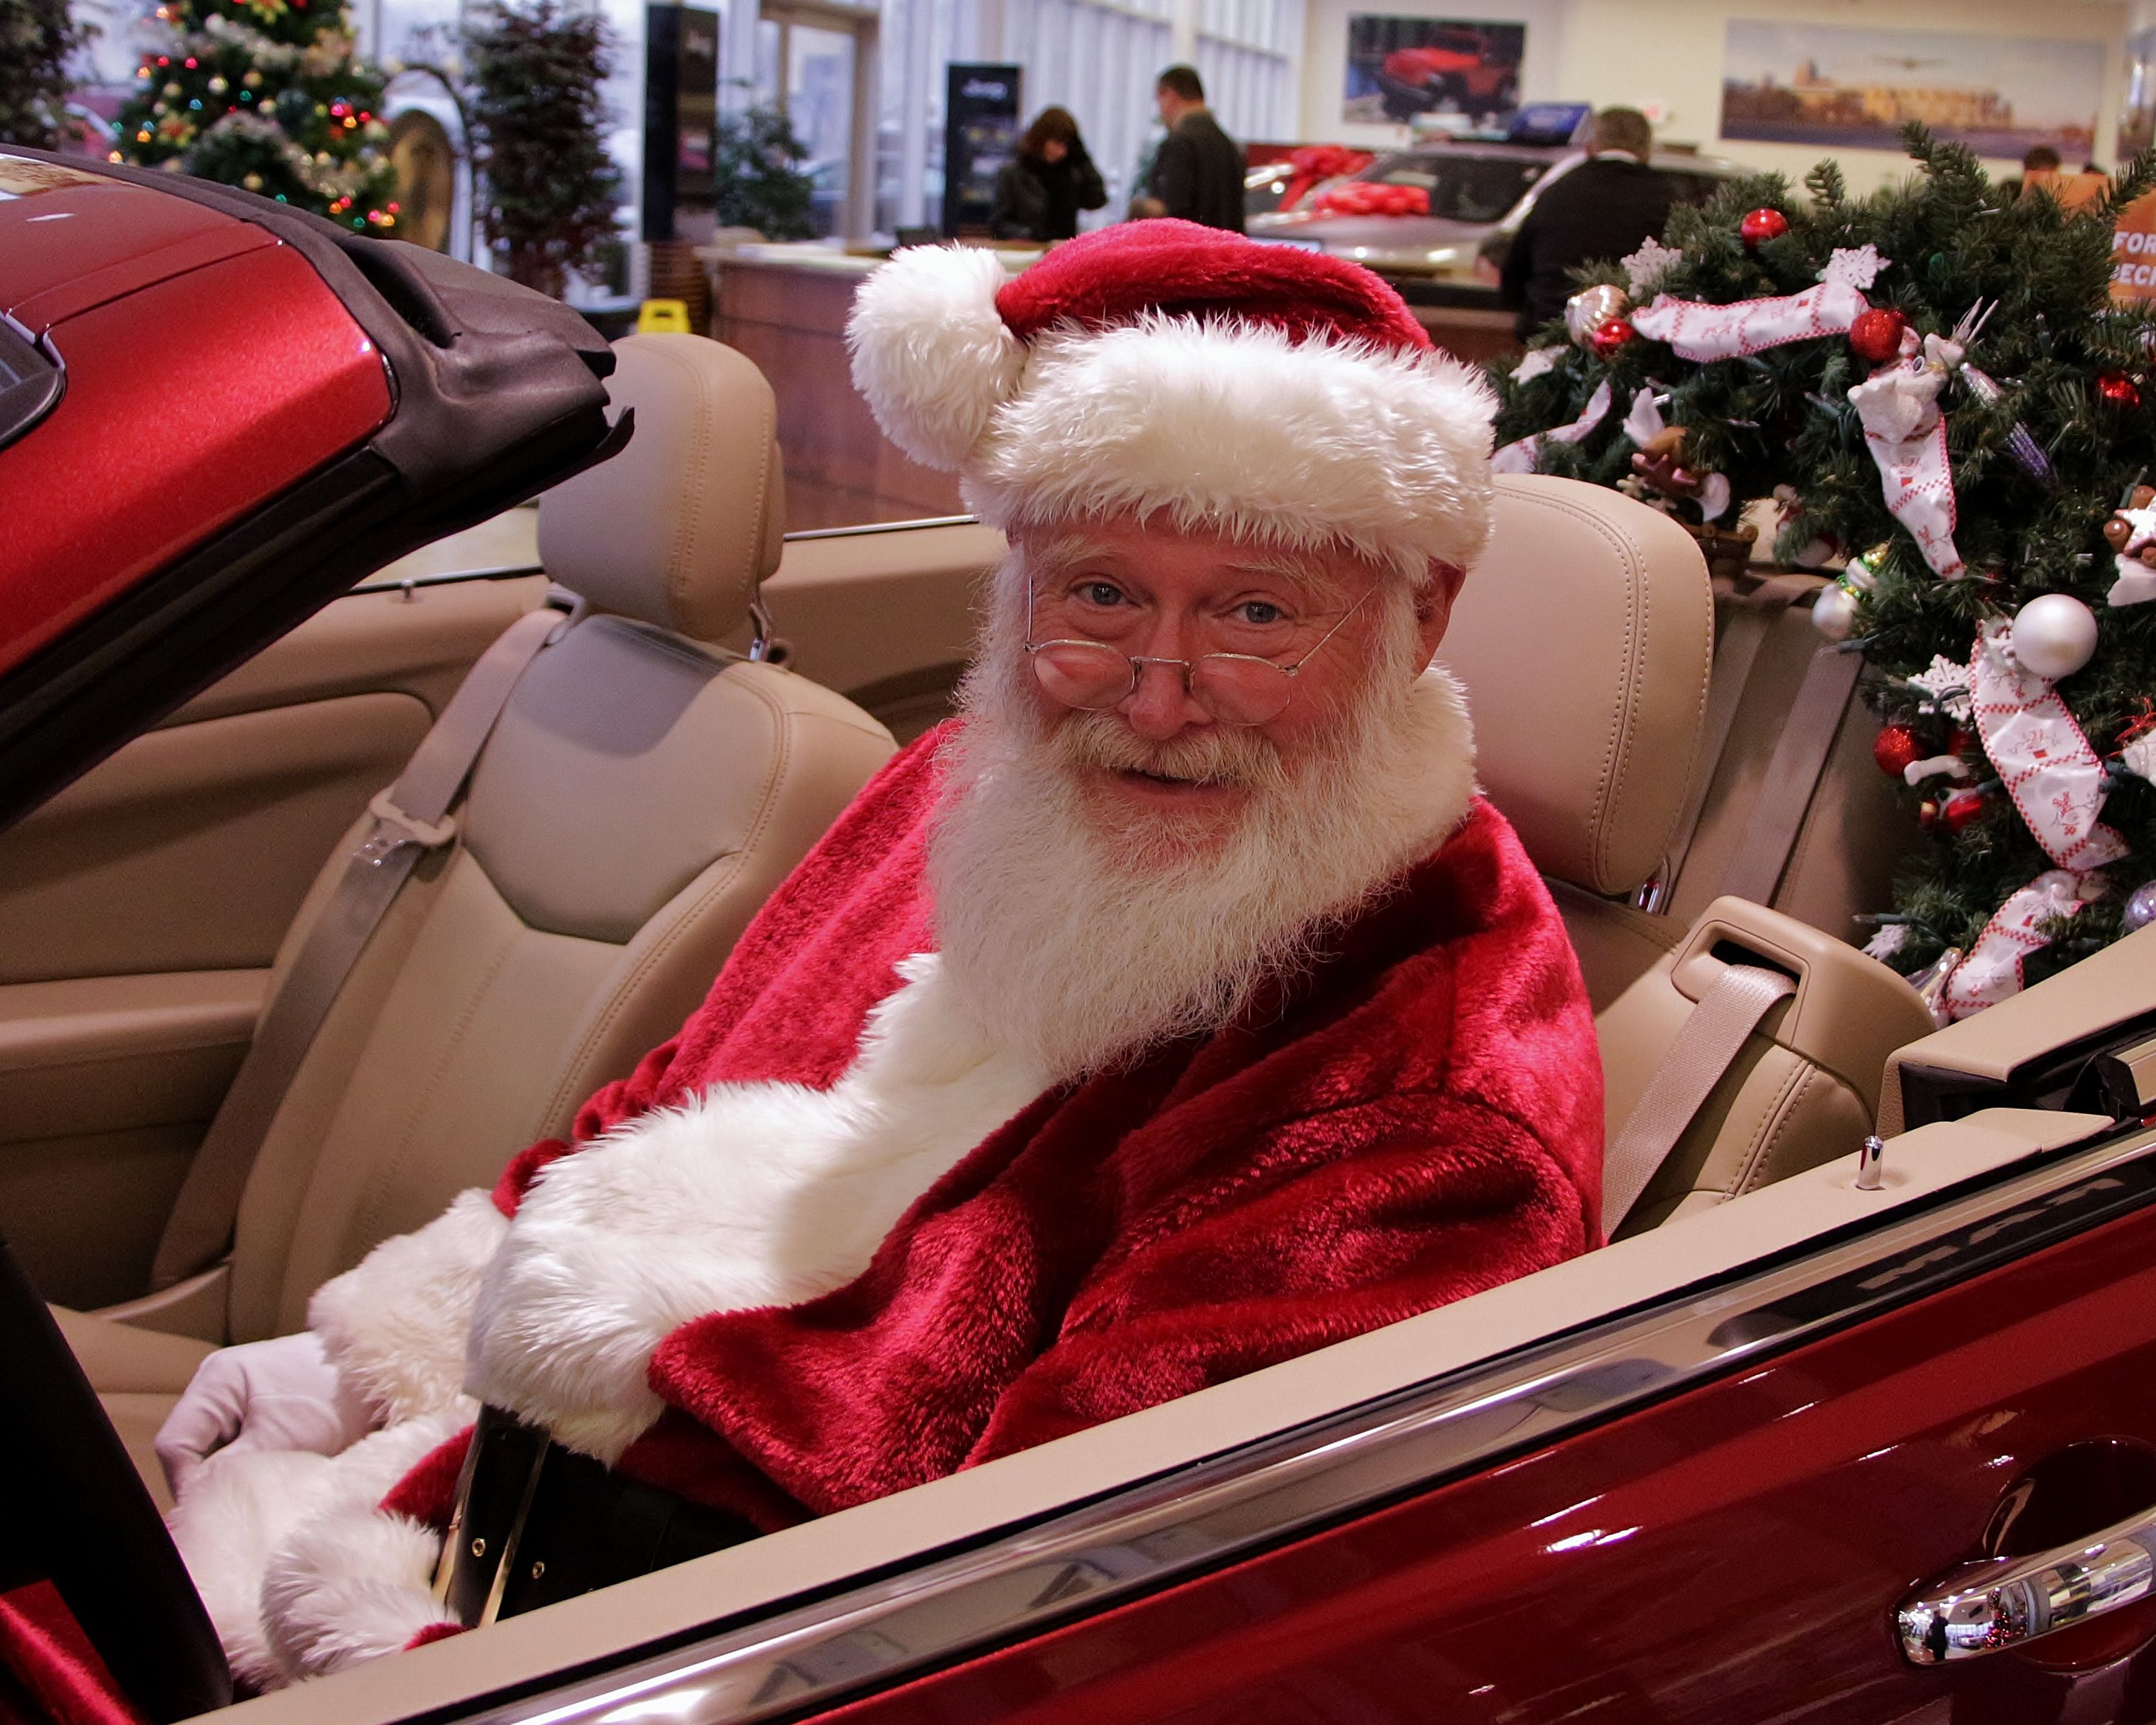 Santa Claus couldn't be happier with the color and wreath in this Chrysler 200